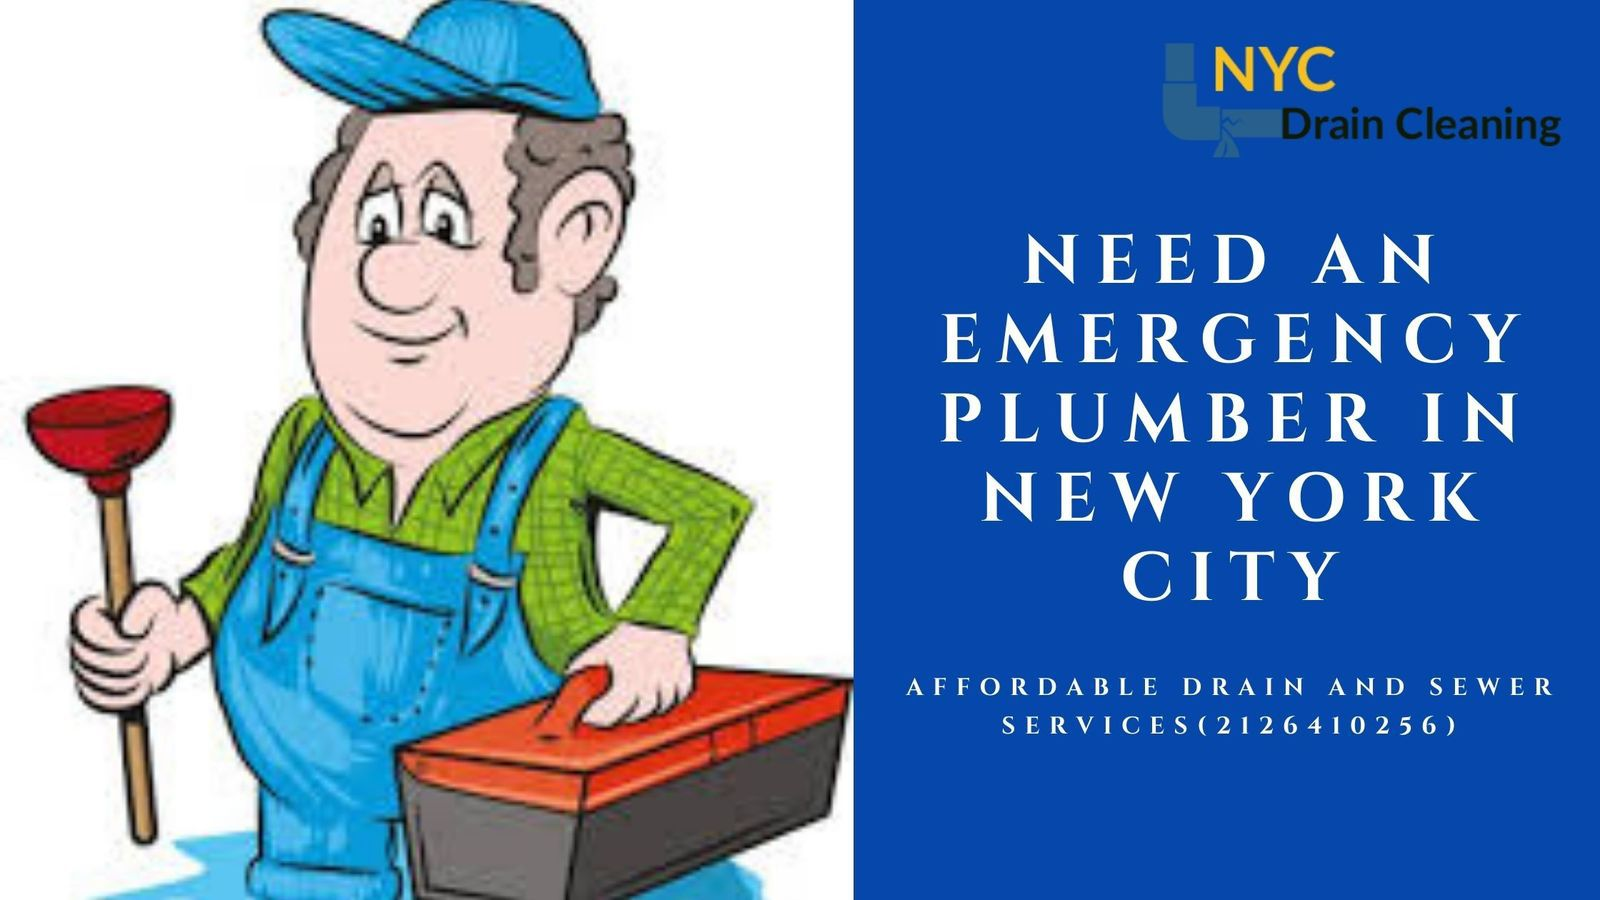 Why Do You Need an Emergency Plumber in New York City? - Drain and Sewer Cleaning Near Me